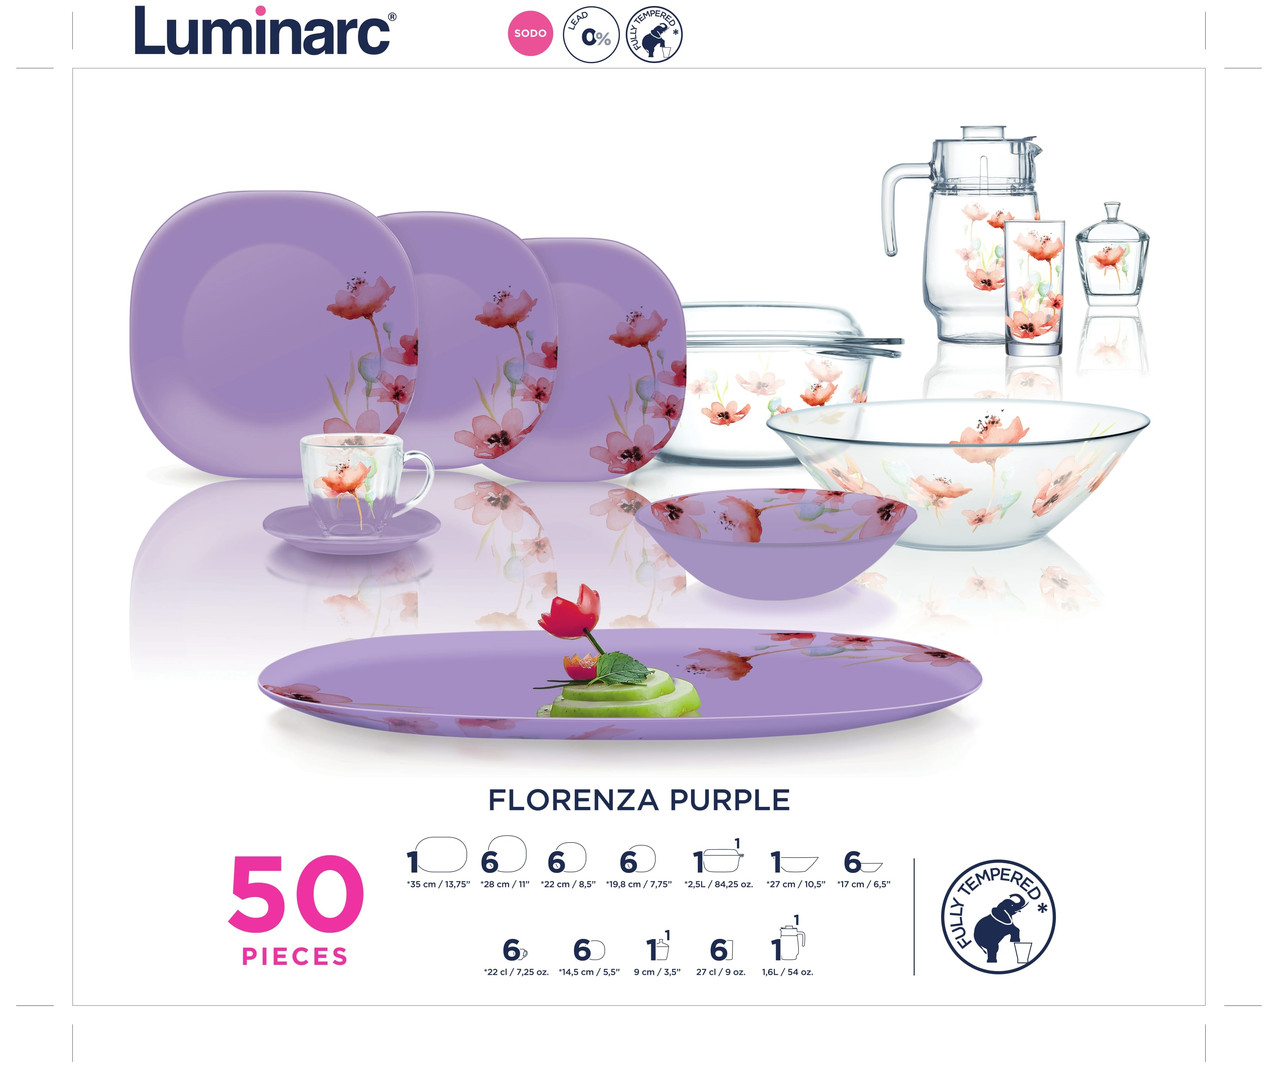 Столовый сервиз Luminarc FLORENZA PURPLE 50пр. на 6персон